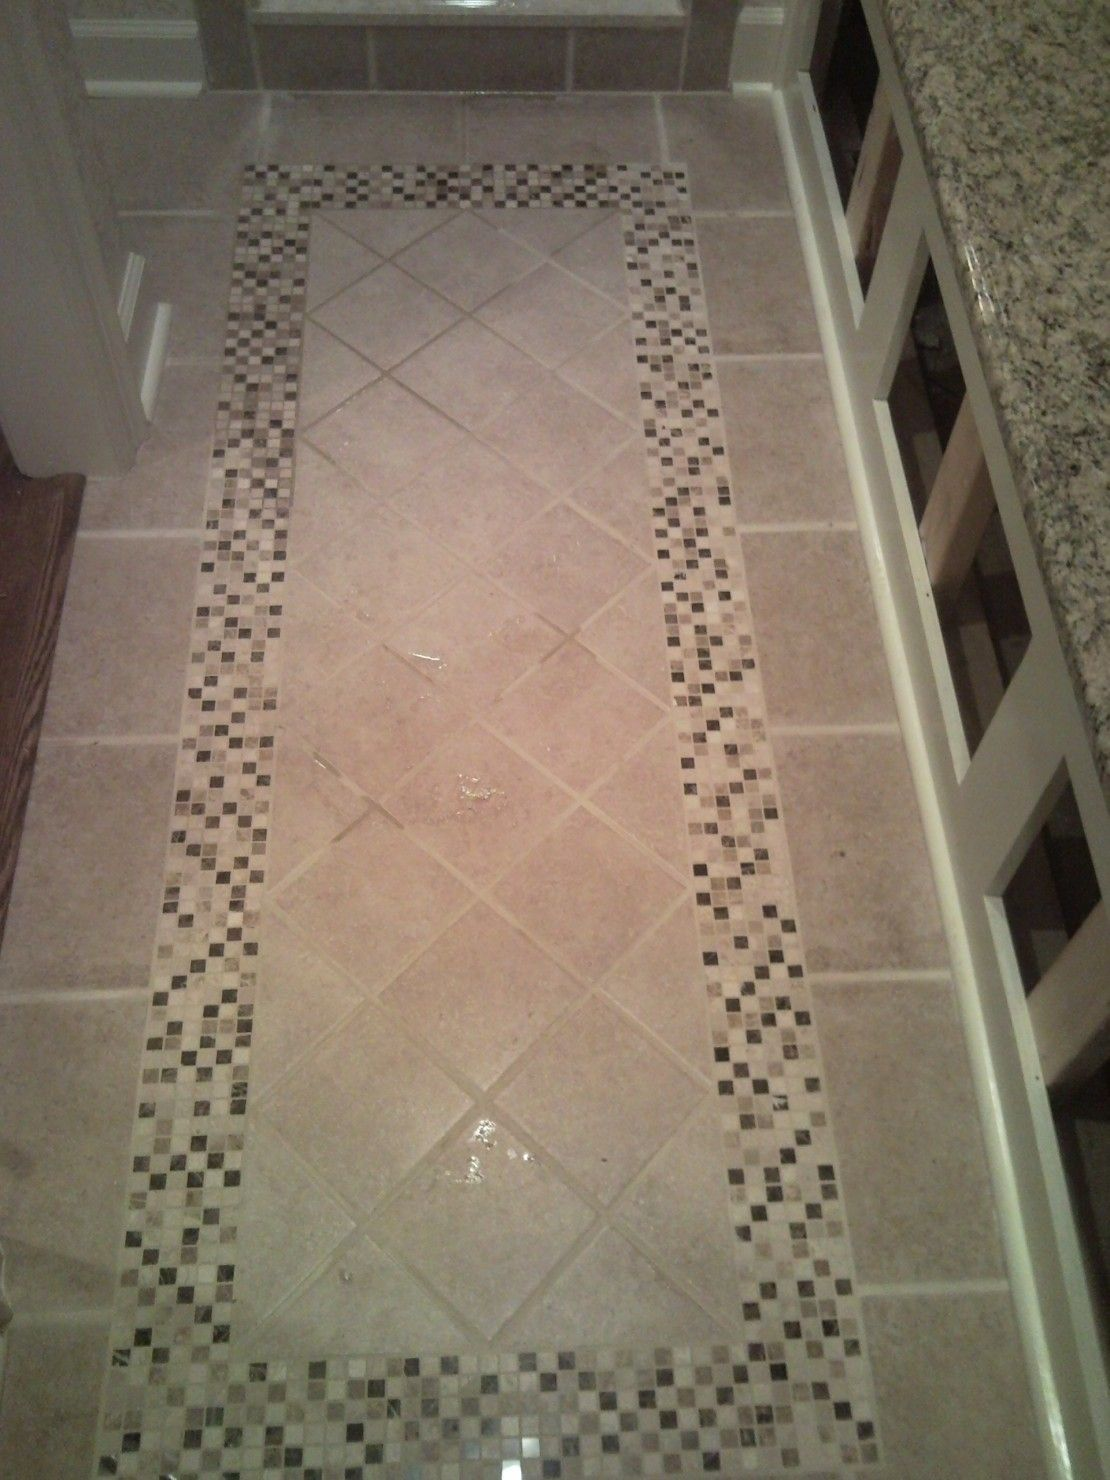 Interior design tile floor with inlaid design design ideas vinyl interior design tile floor with inlaid design design ideas vinyl sheet flooring floor tiles laminate tile dailygadgetfo Images